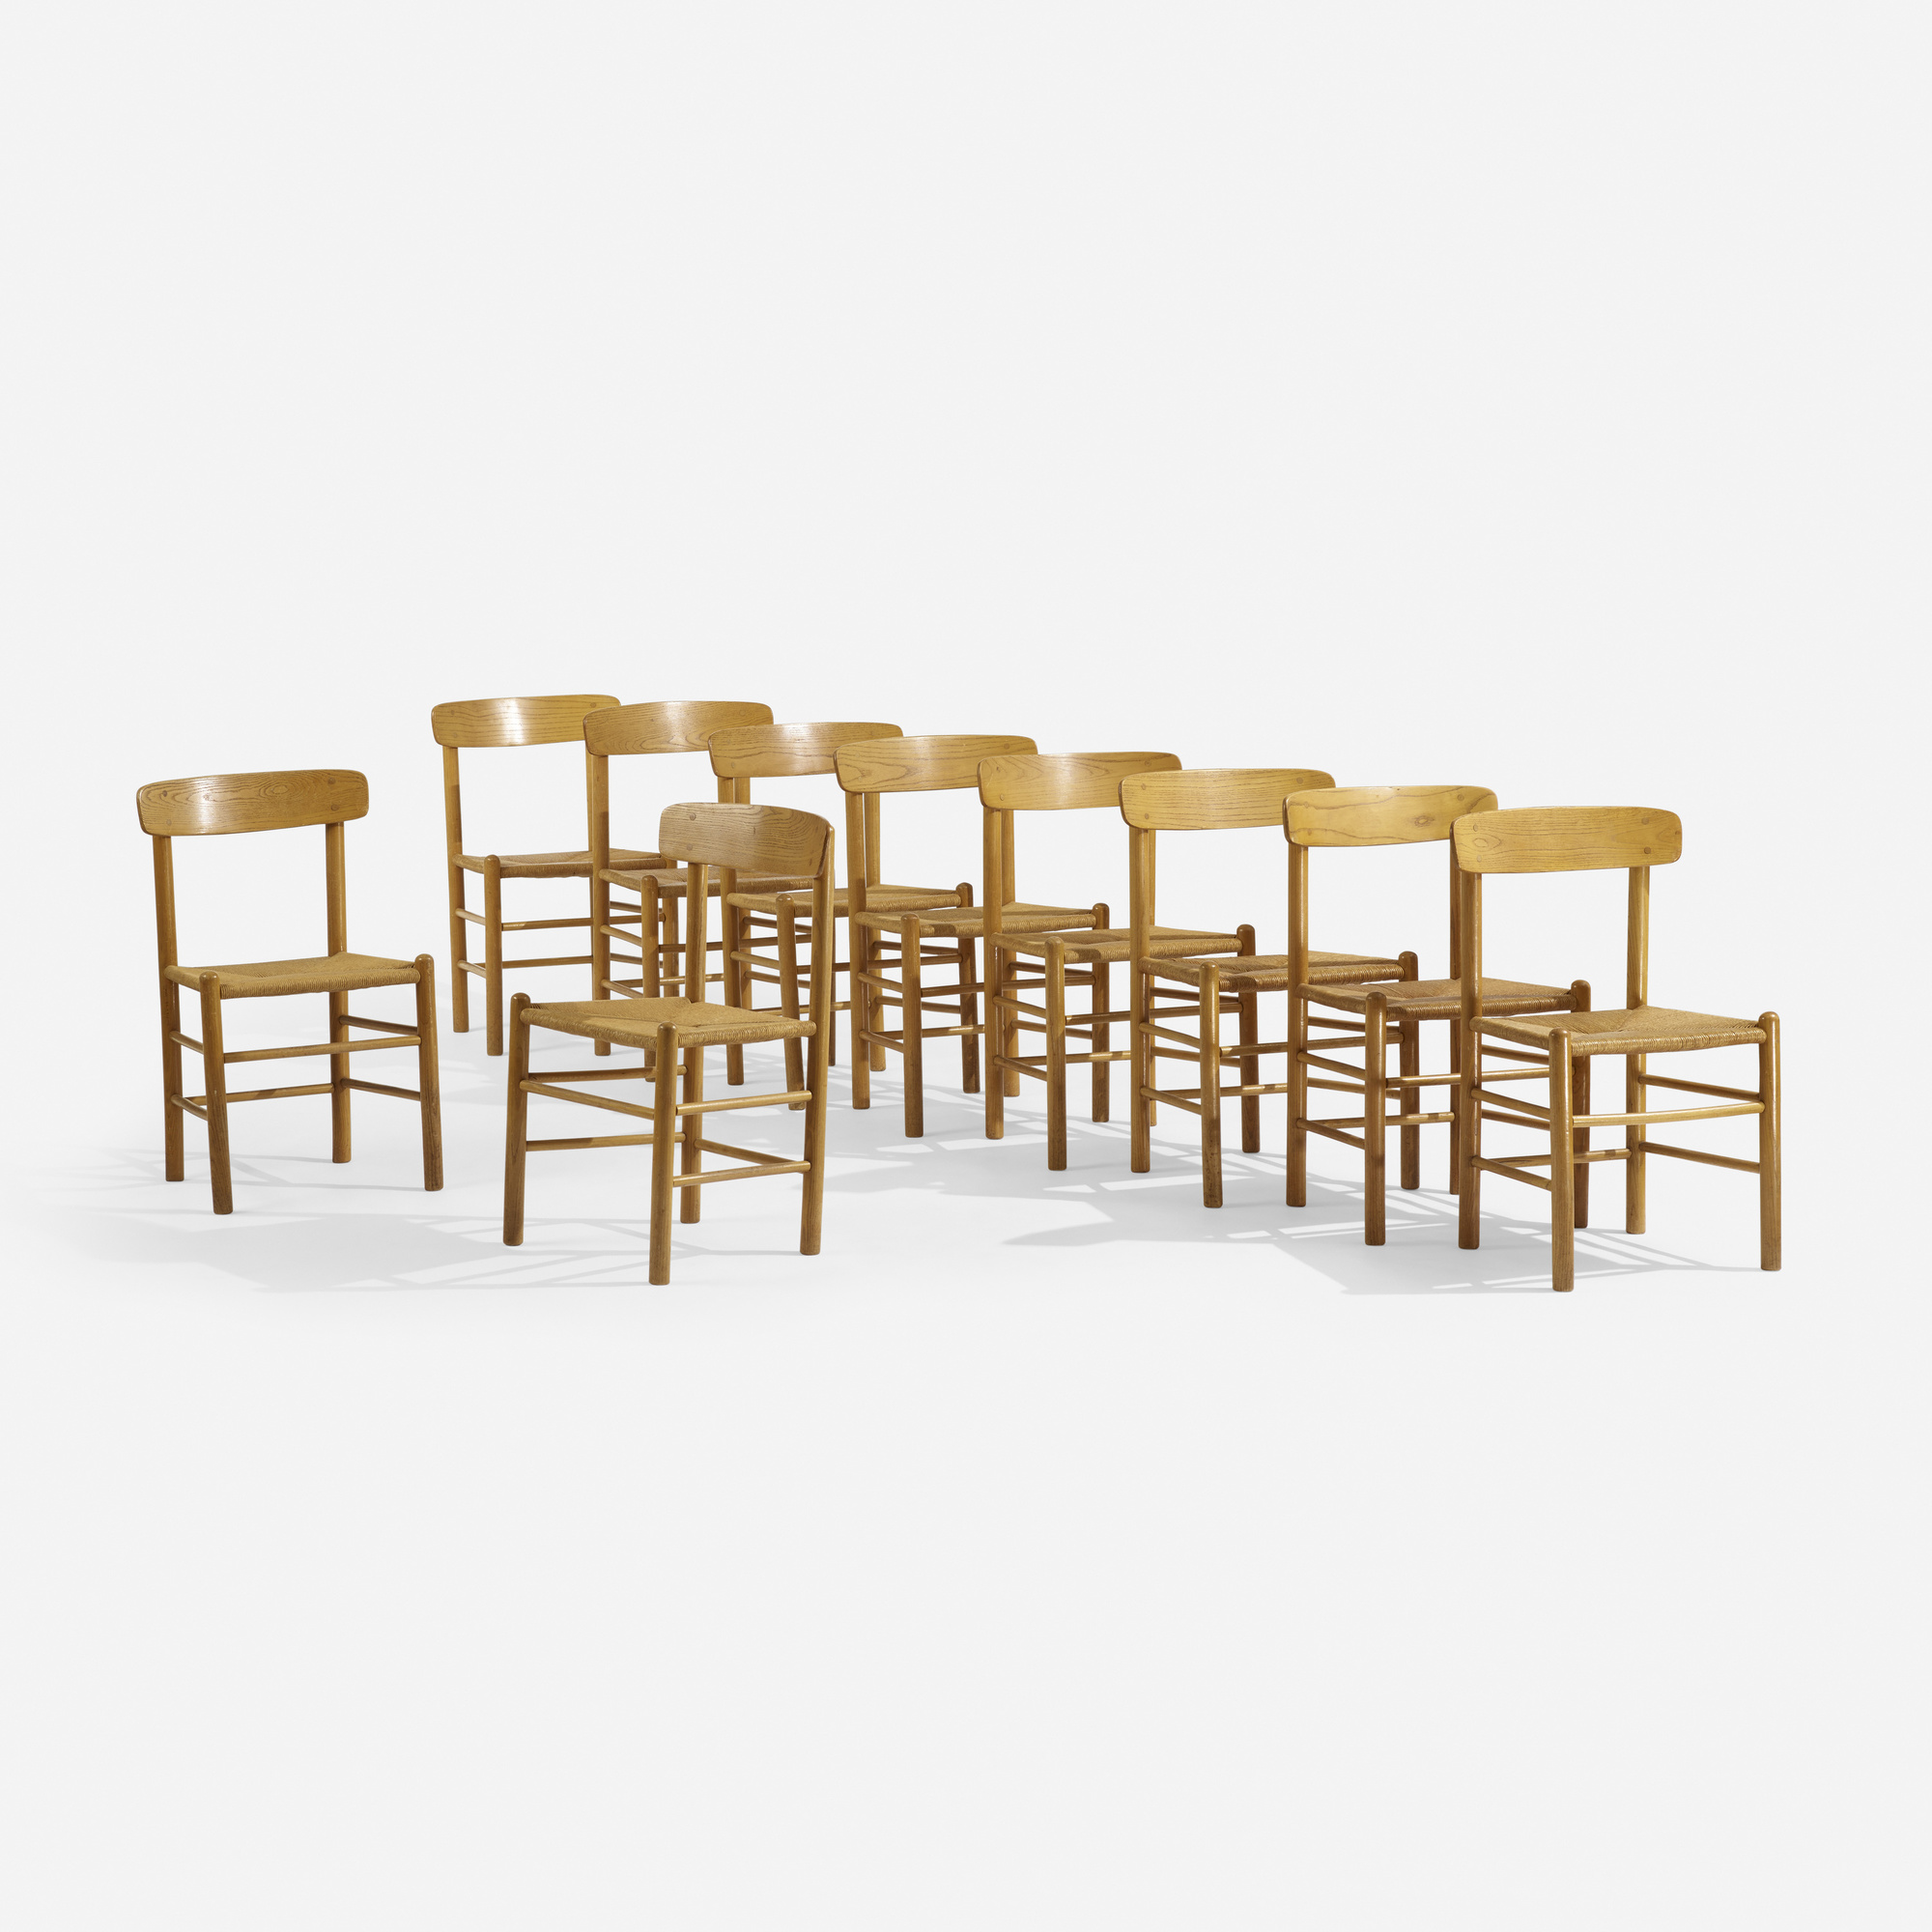 311: Borge Mogensen, attribution / dining chairs, set of ten (1 of 5)